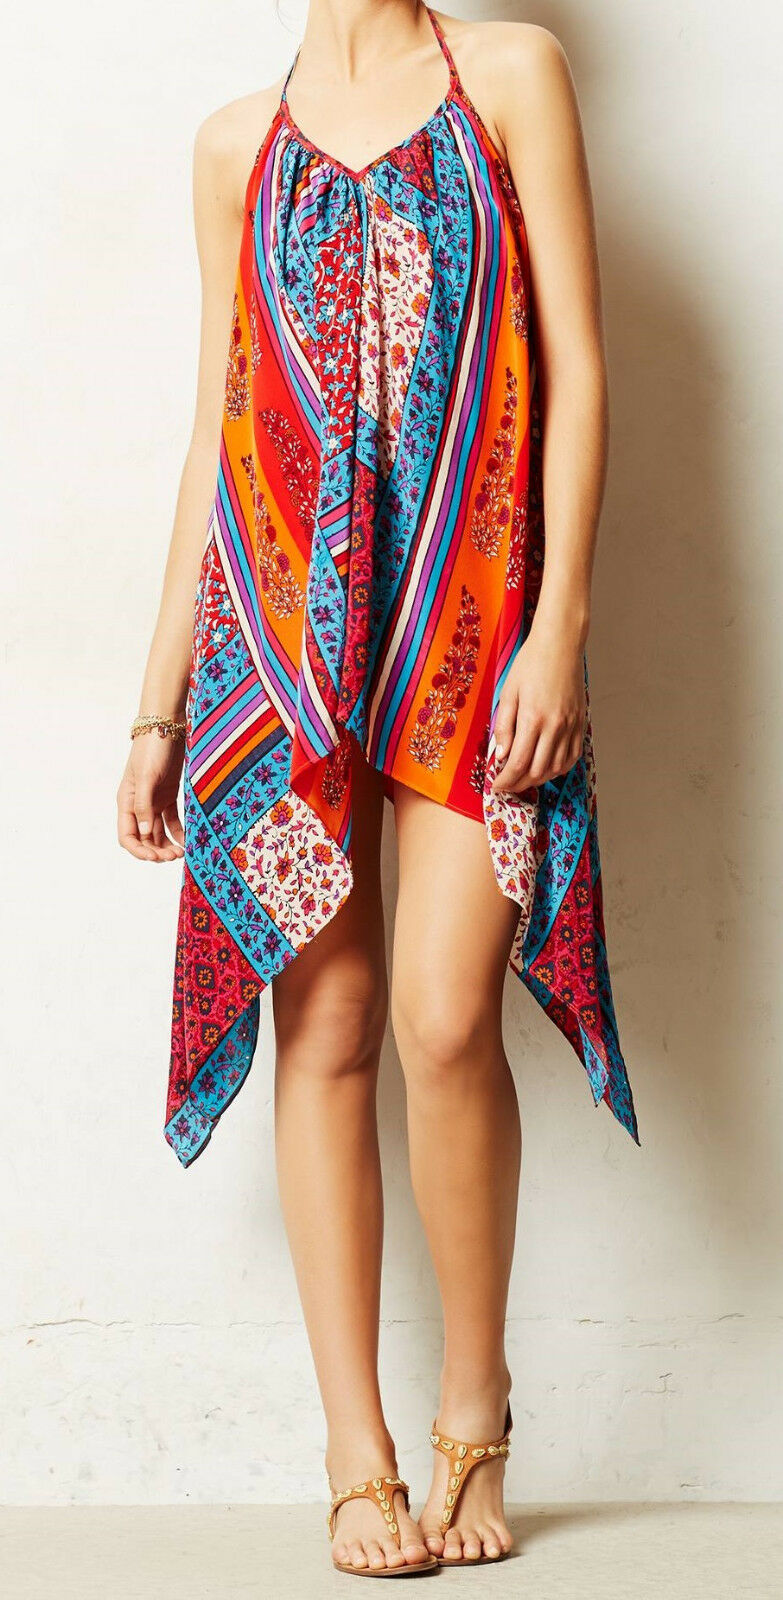 KAS New York Silk Alys Cover-Up Dress Size X-Small NW ANTHROPOLOGIE Tag